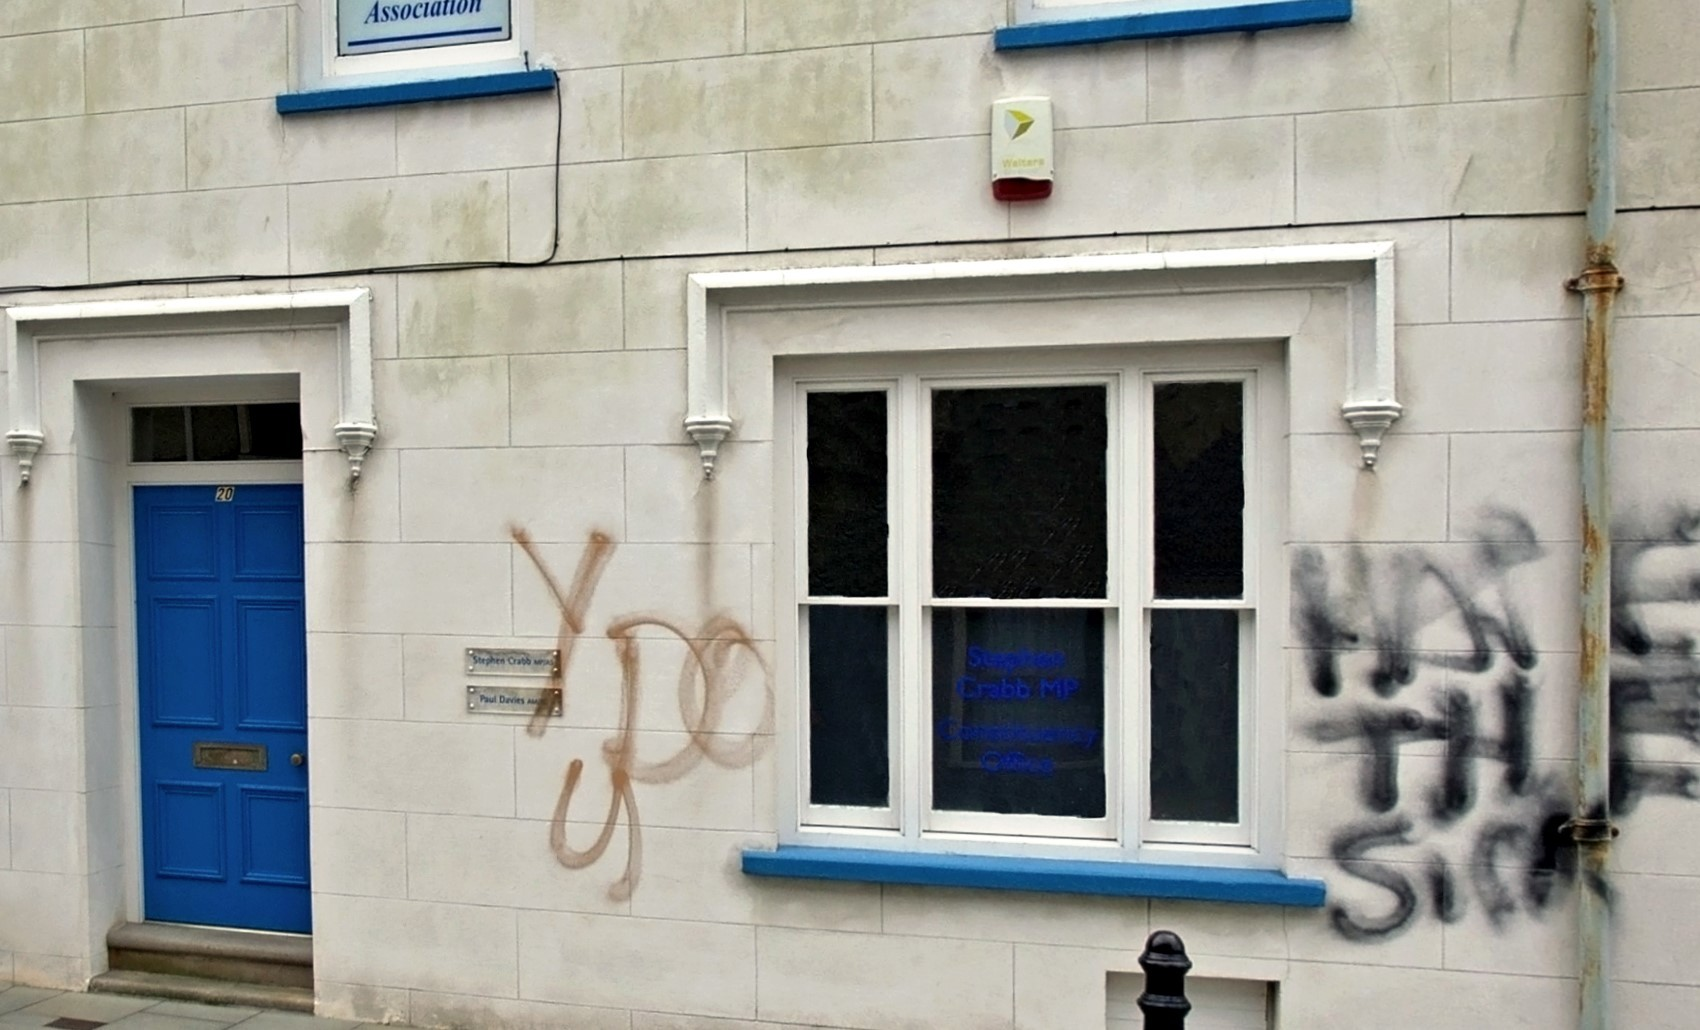 'Why do you hate the sick' written on the Conservative offices in Haverfordwest. PICTURE: Western Telegraph